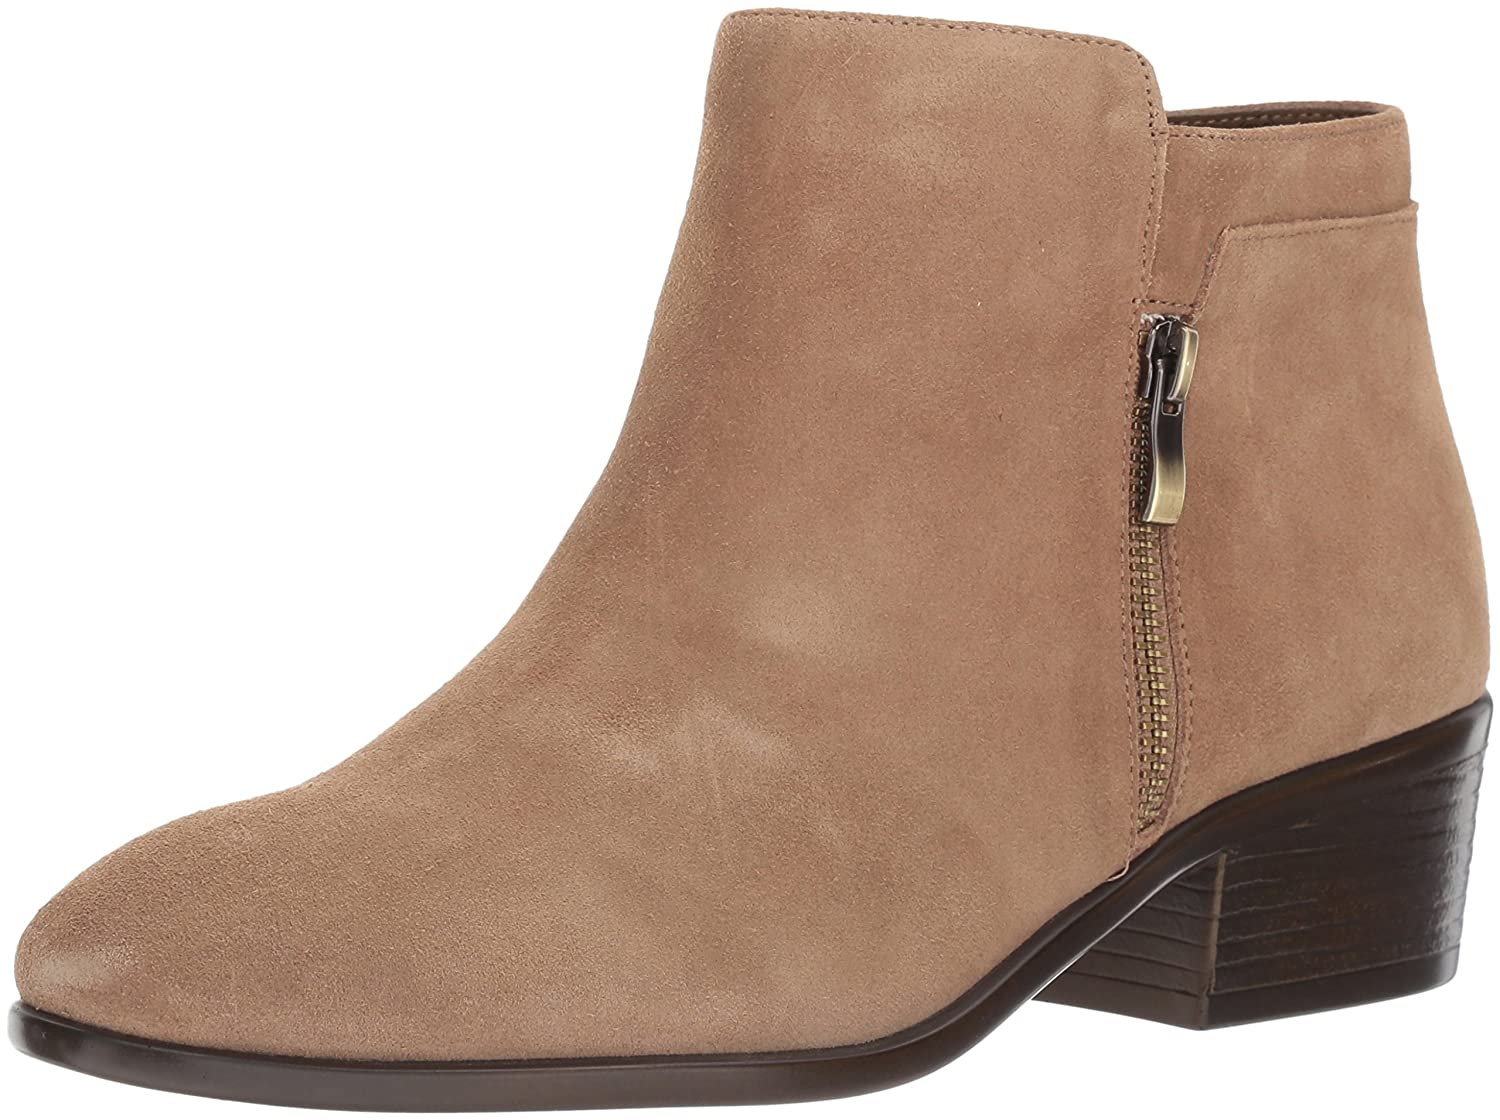 Aerosoles Women's Mythology Boot B06Y61BFFG 6.5 W US|Light Tan Suede